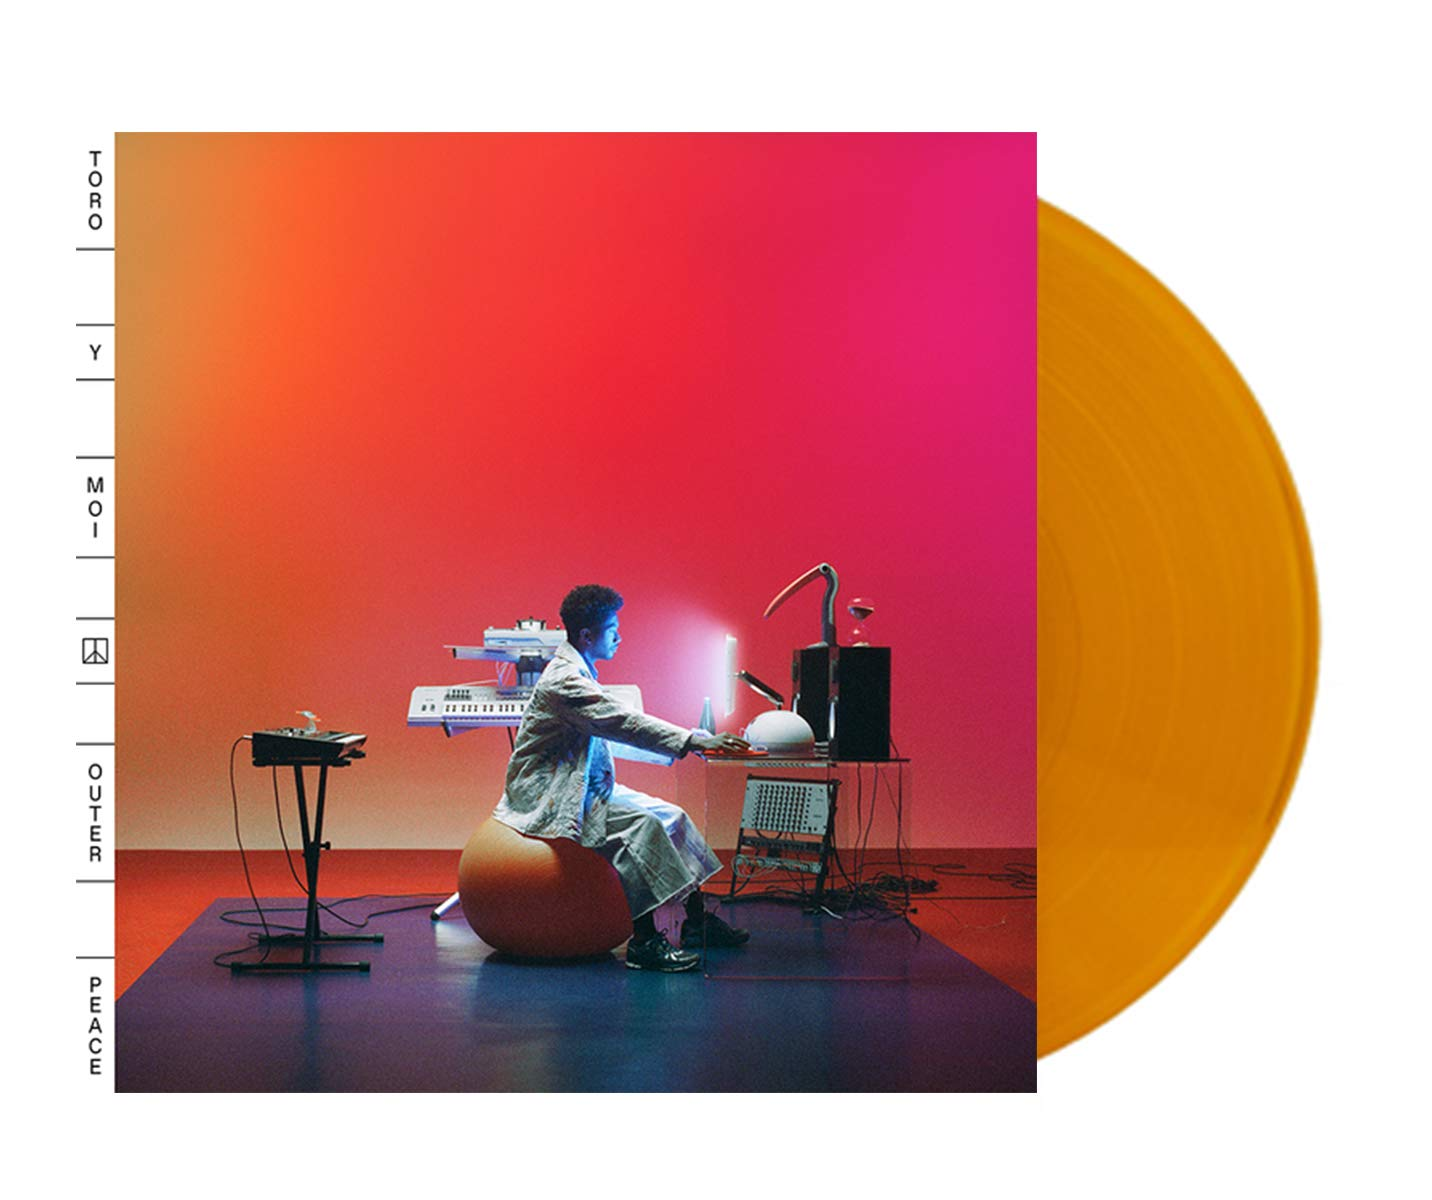 Toro Y Moi ‎- Outer Peace Exclusive Translucent Orange Vinyl LP (Limited to 300 Copies + Download) by Carpark Records